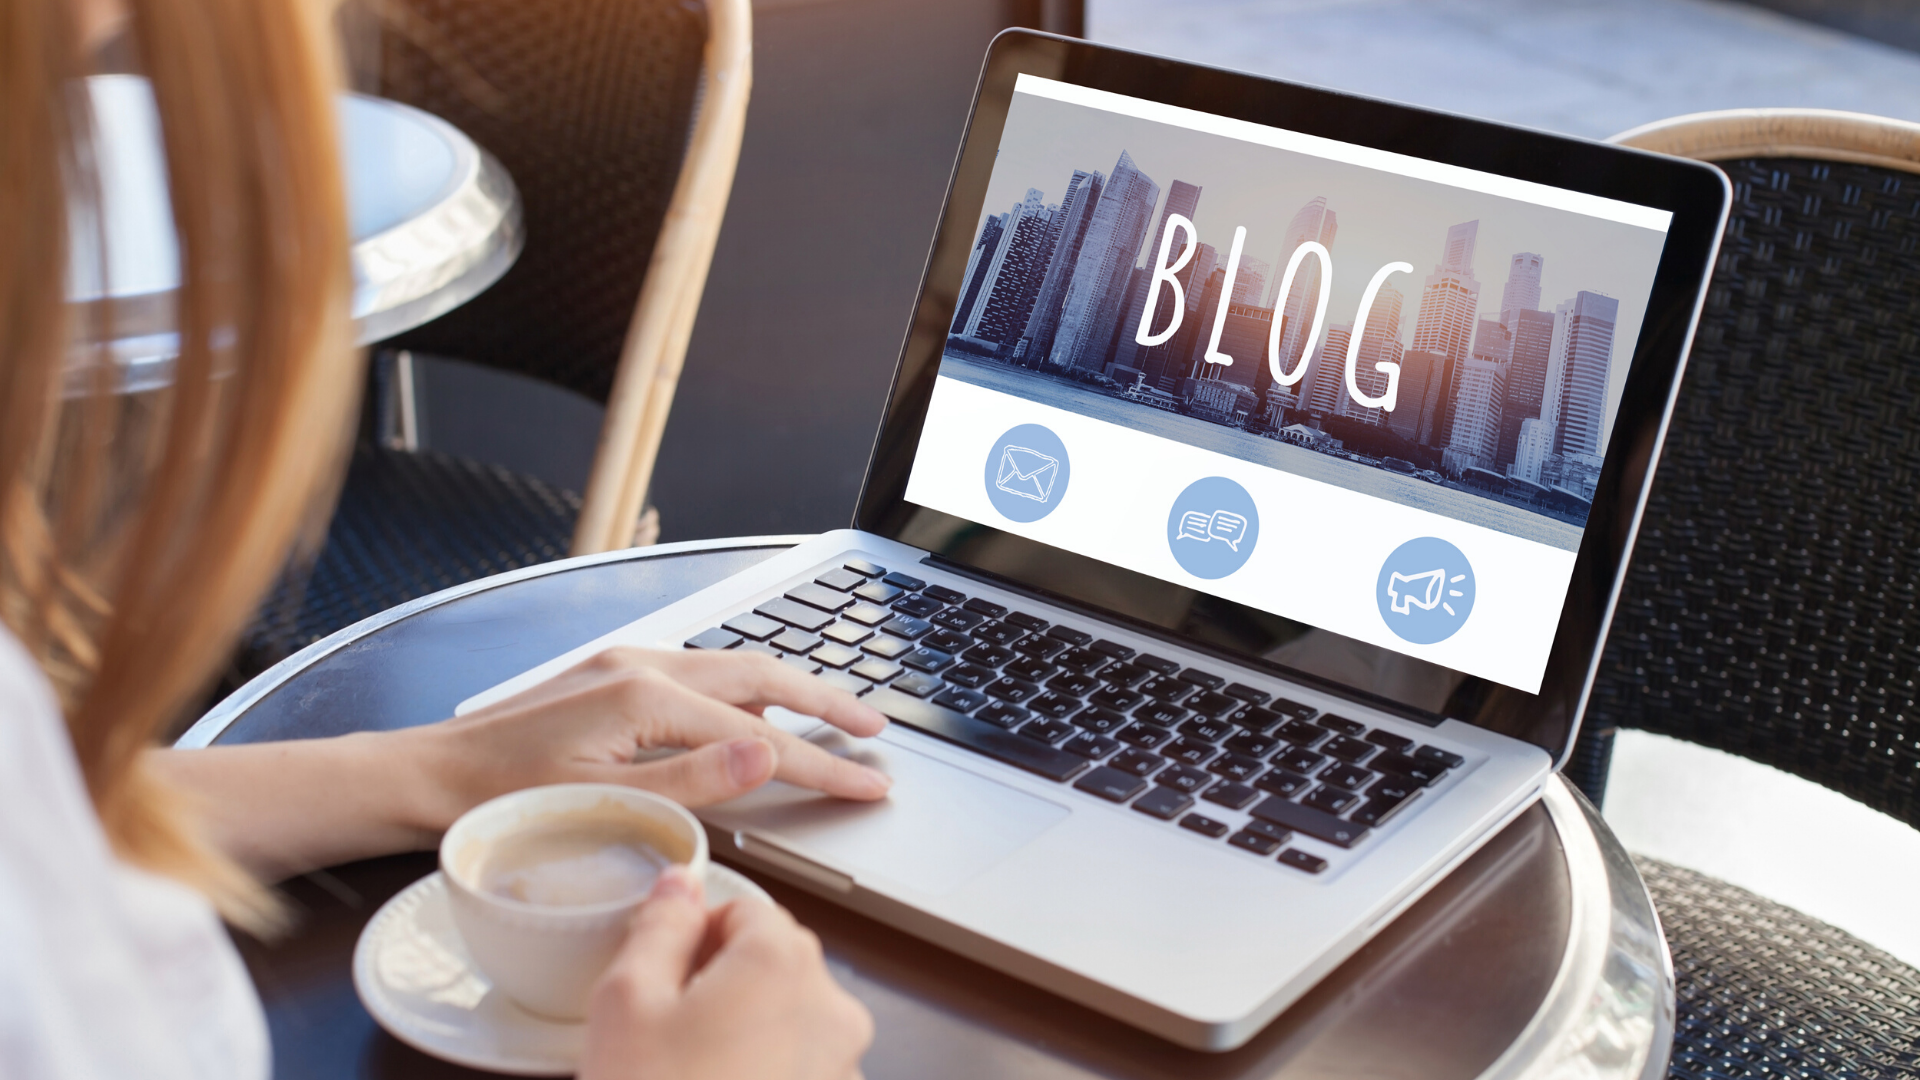 Producing meaningful content that brings your followers back is what we strive for in the blogging world. Find out how to create, and update, those timeless blog posts to gain more traffic.